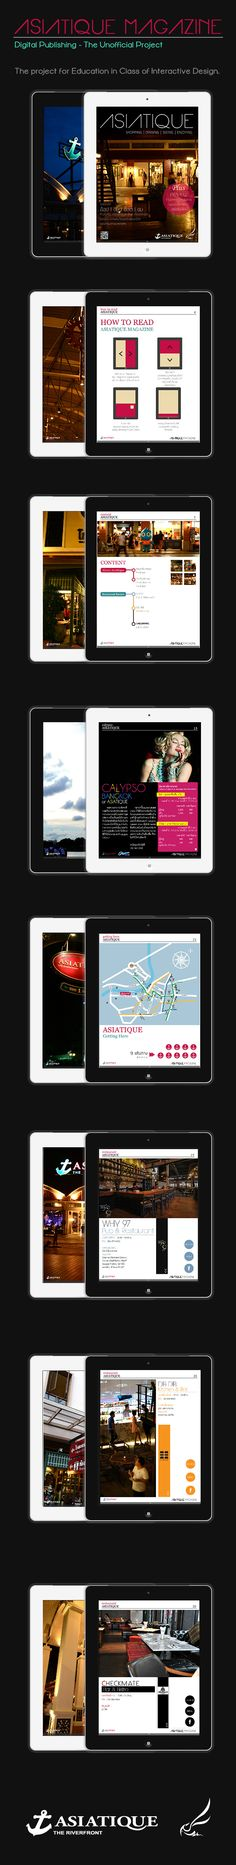 Asiatique Magazine (Unofficial Digital Publishing) by Kew Katetunnop, via Behance #MagPlanet #TabletMagazine #DigitalMag